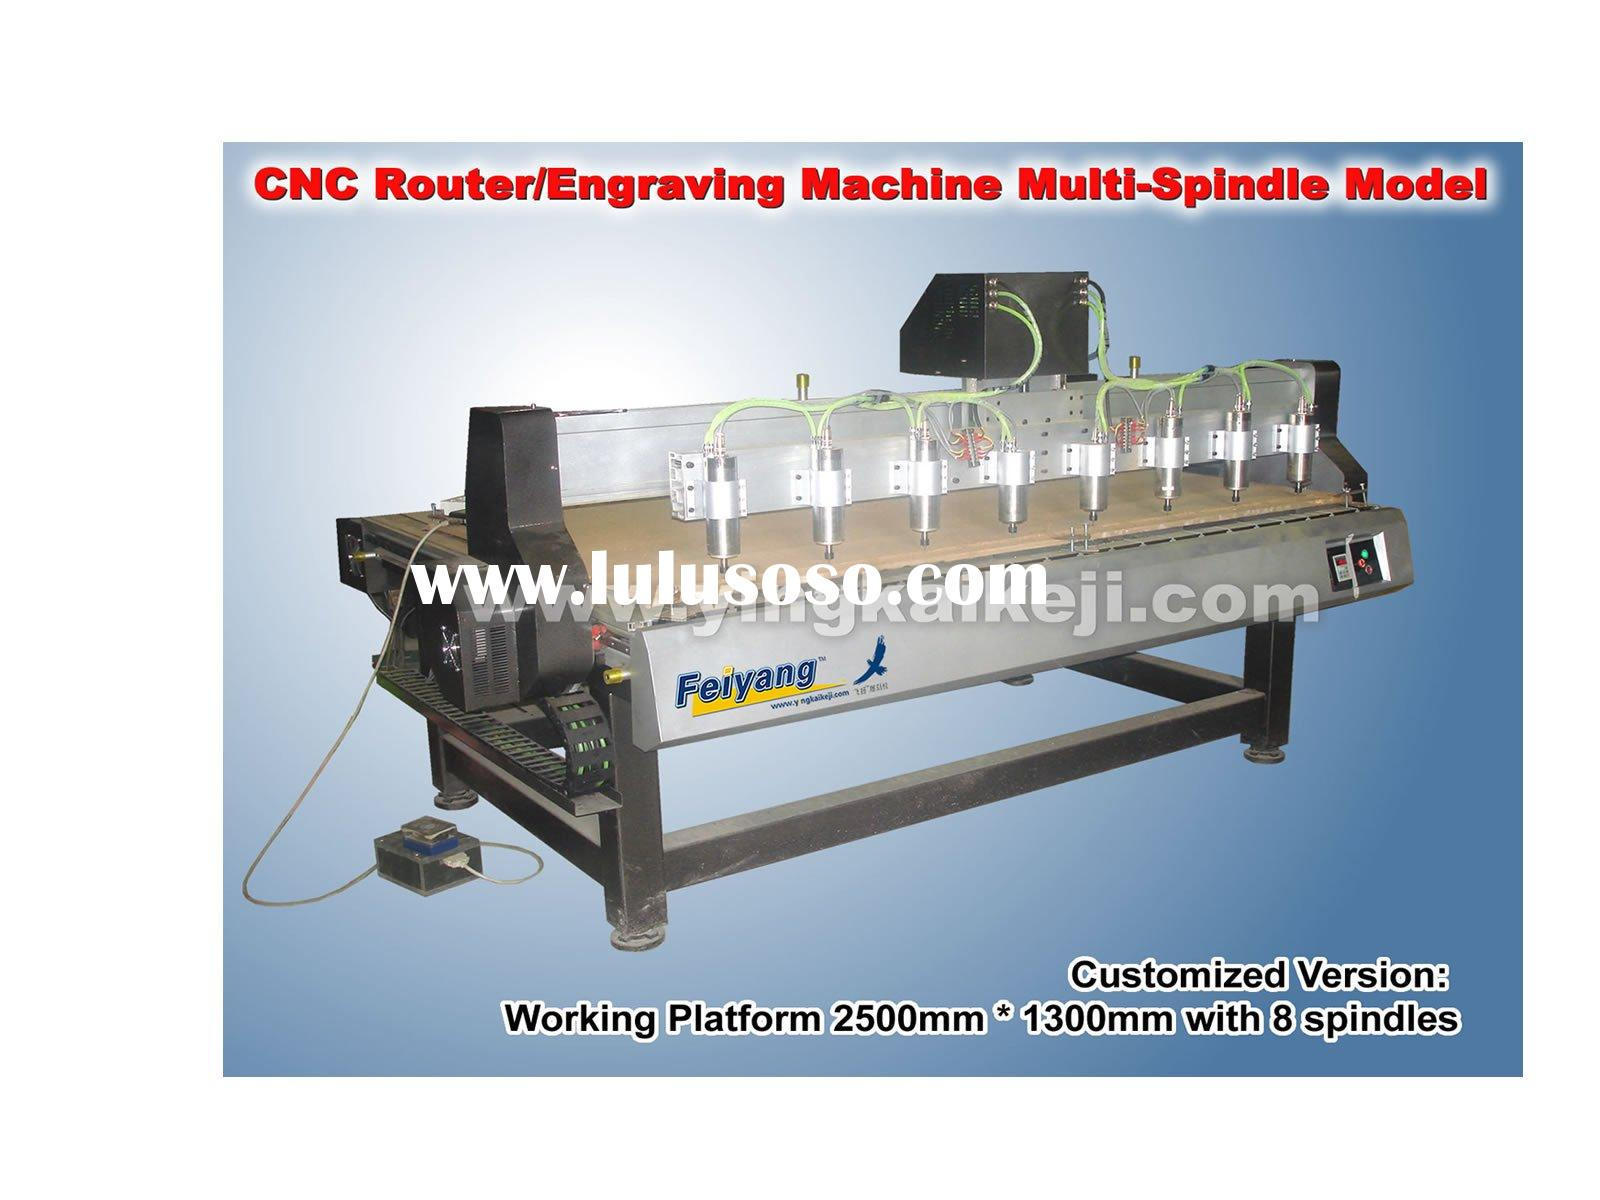 Highest speed CNC Router/Engraving Machine Multi-Spindle Version